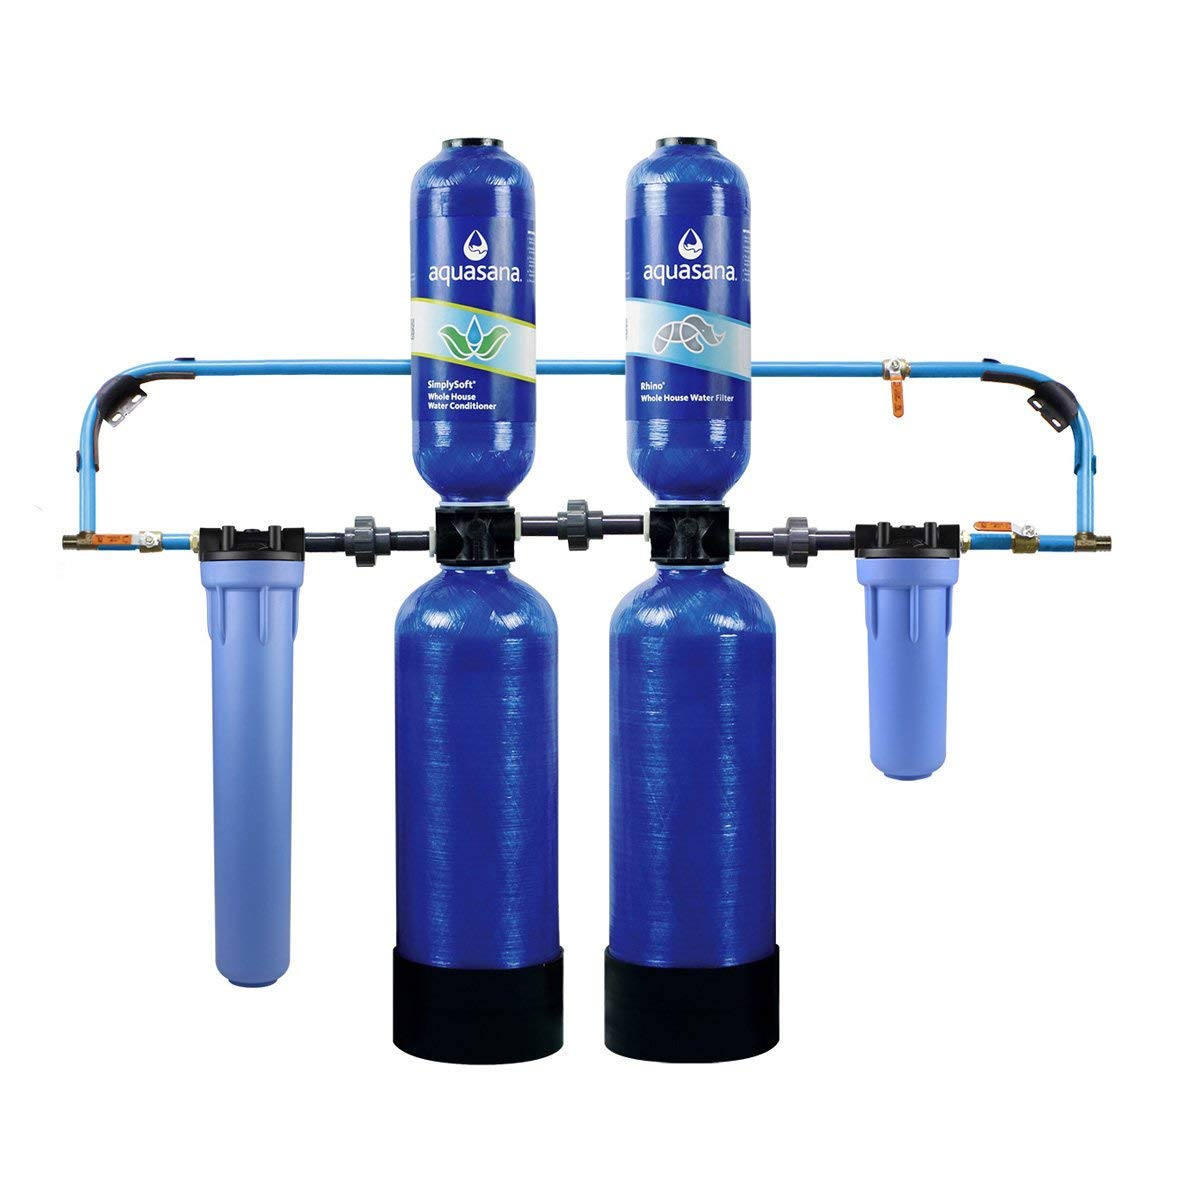 Aquasana 10-Year, 1,000,000 Gallon Whole House Water Filter with Professional Installation Kit_5